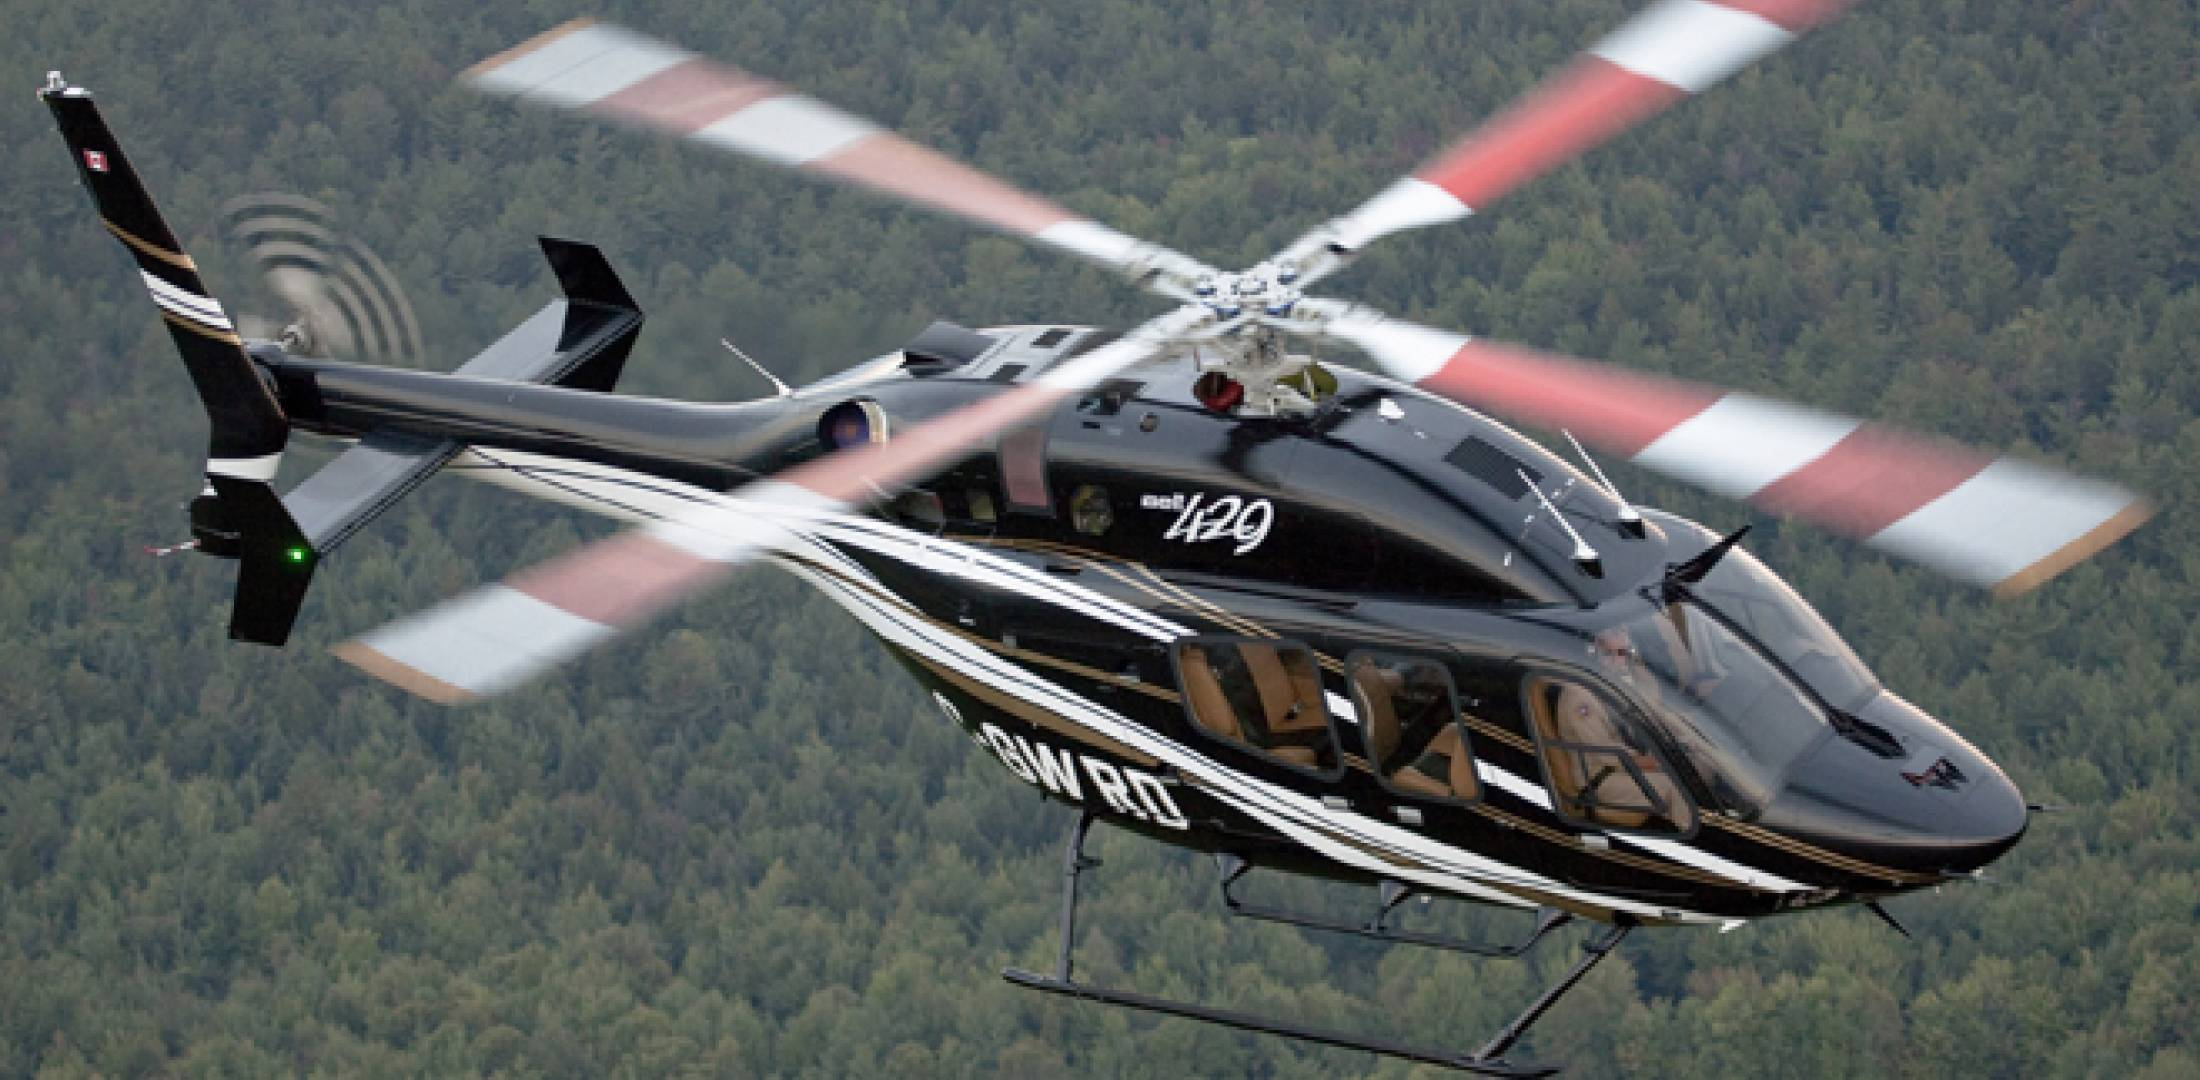 The Federal Court of Canada found that the skid gear on the two prototypes of the Bell 429 infringed Eurocopter's patent. That gear is not on production Bell 429s.